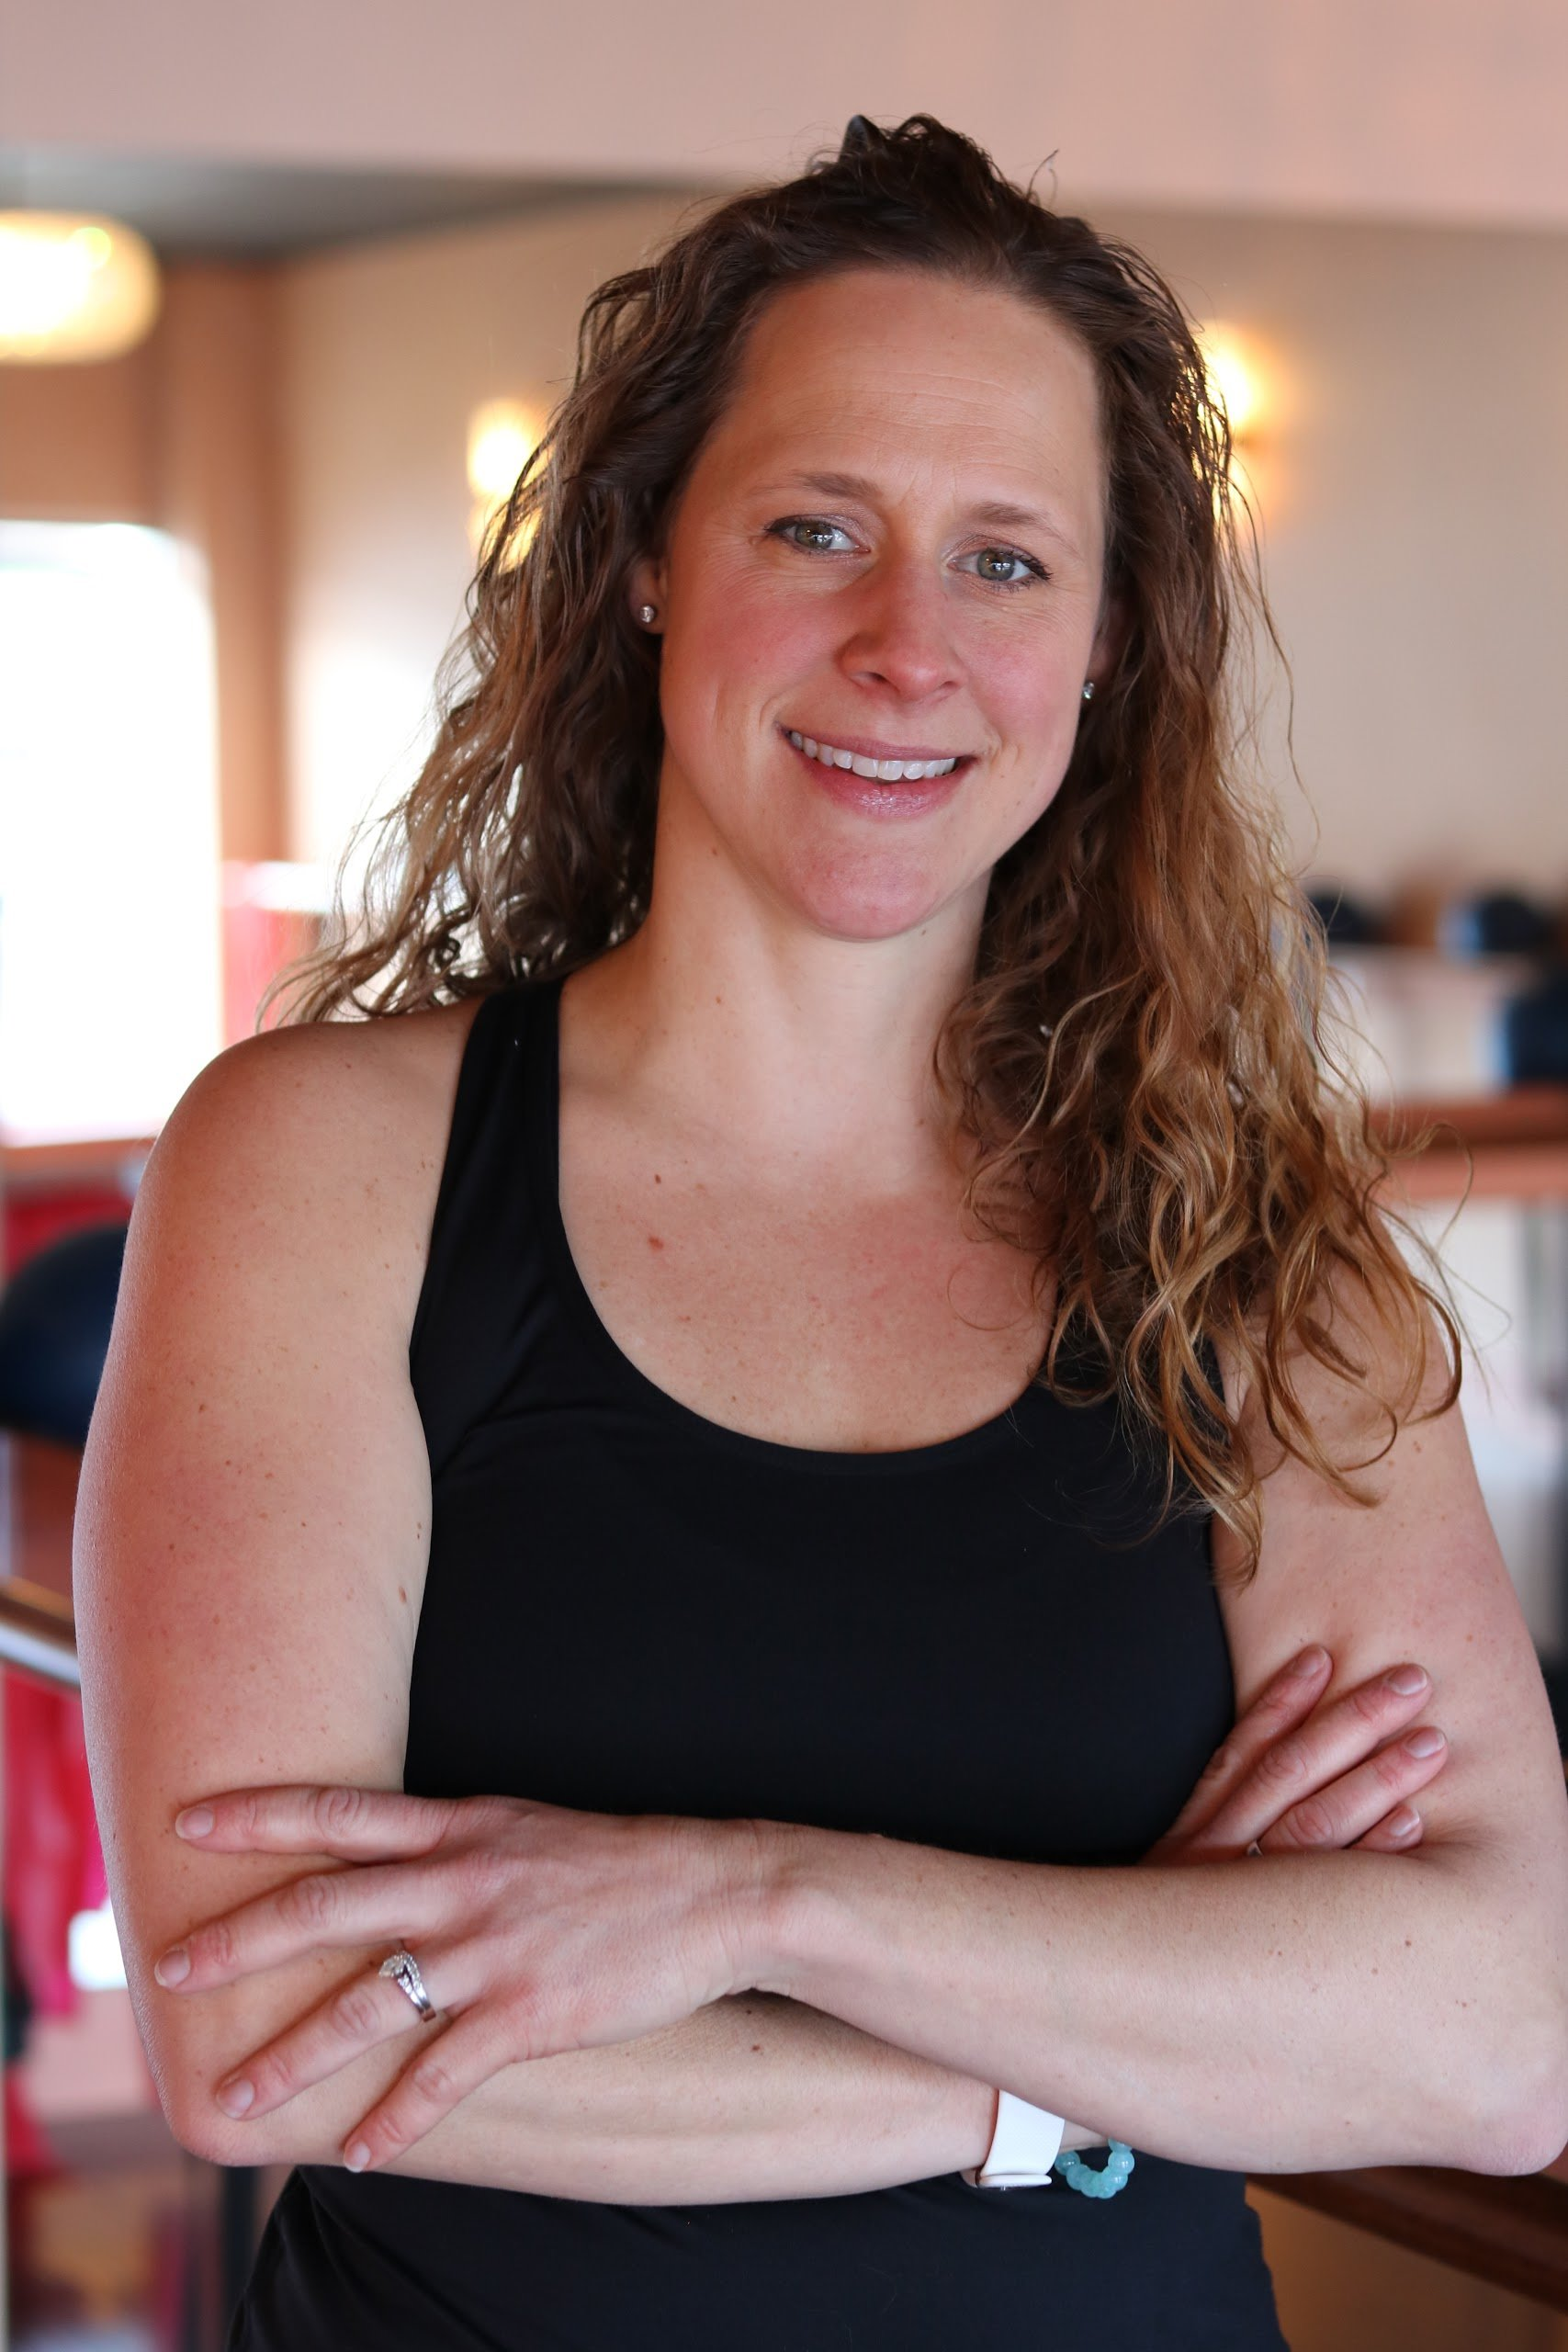 Jen Hohman // Instructor  When she is not working as a nurse or instructing barre classes, she enjoys many outdoor activities like gardening, biking, hiking, swimming, water & snow skiing.